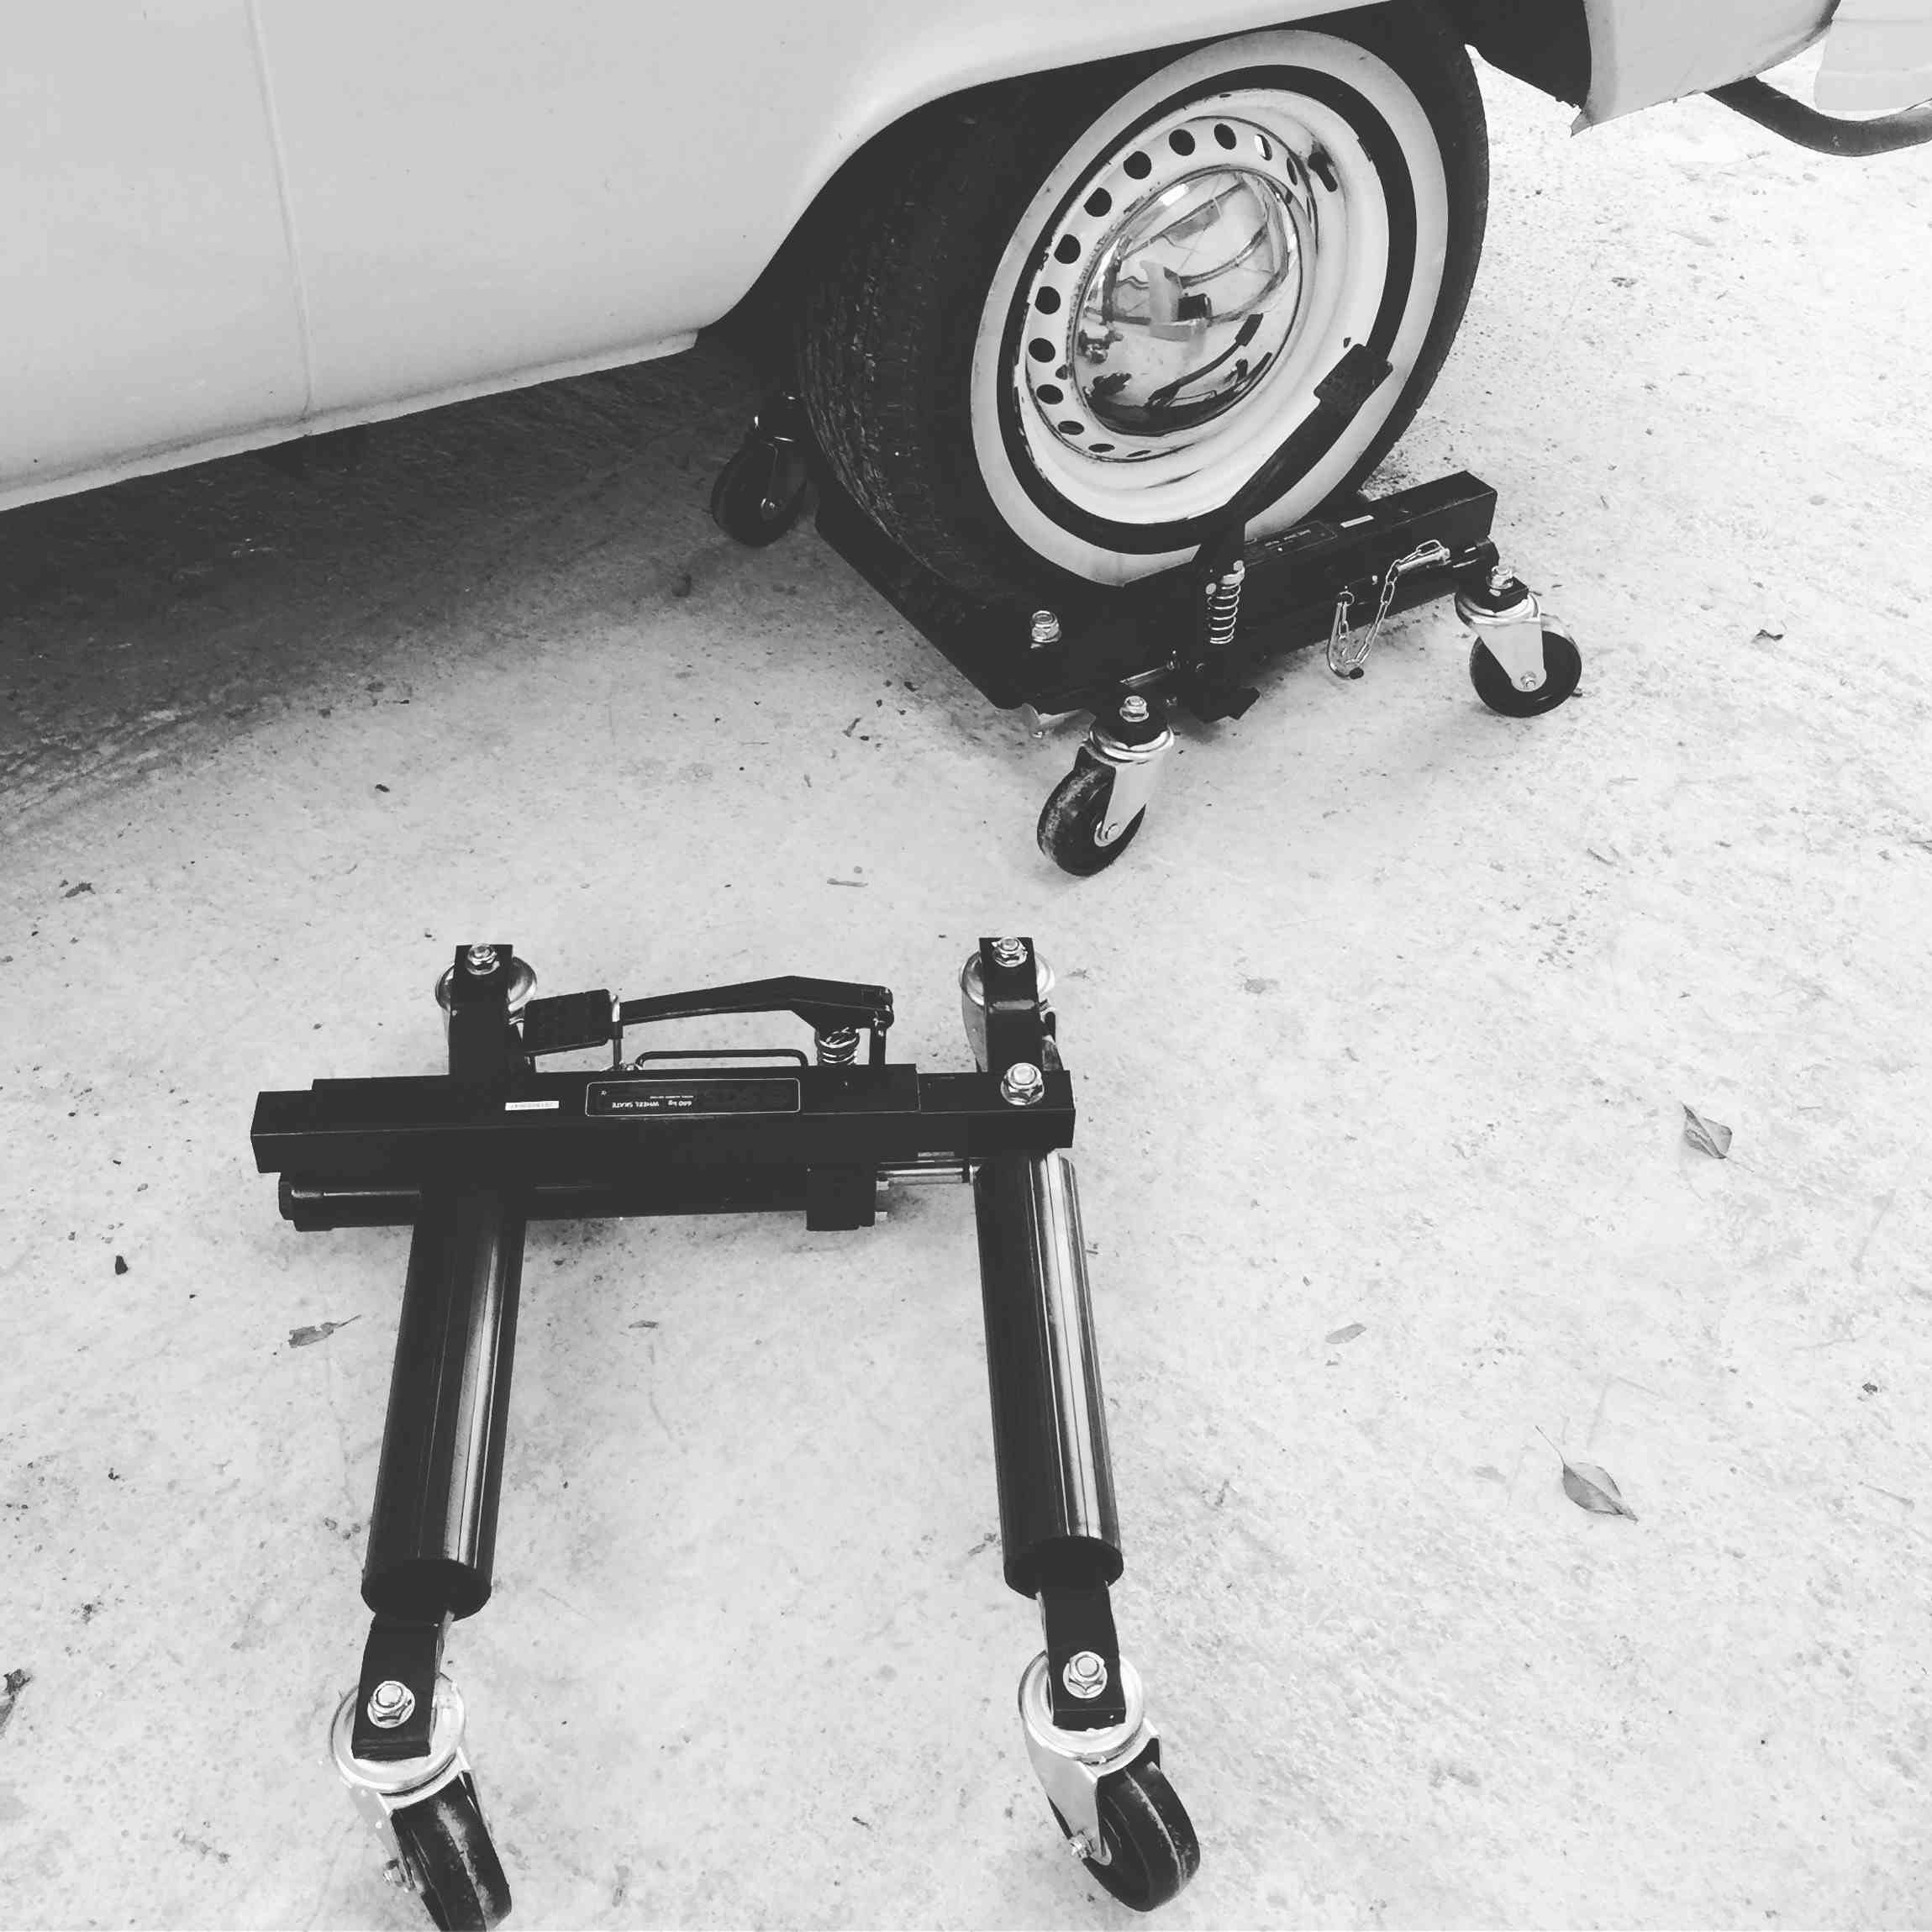 Vehicle skates